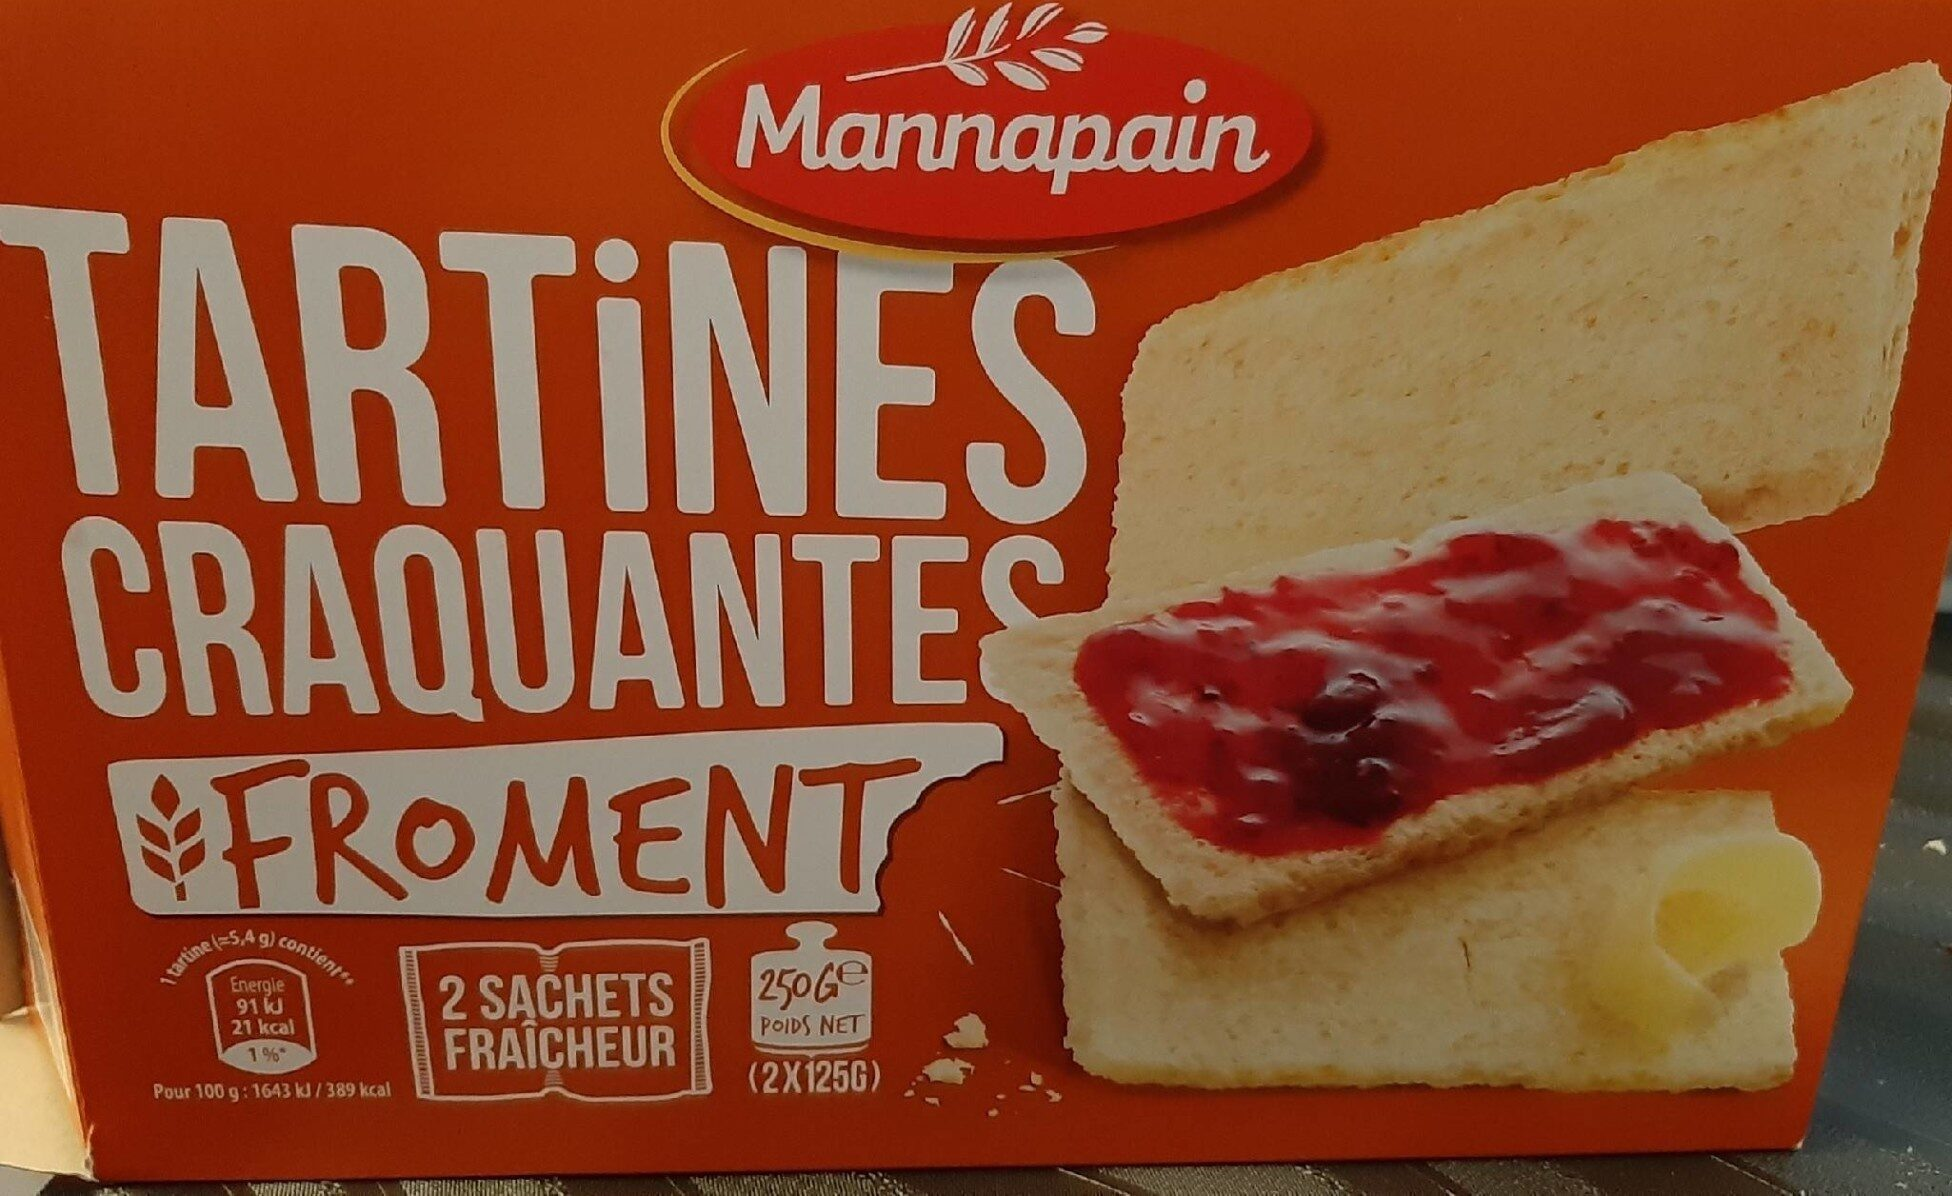 Tartines craquantes Froment - Product - fr